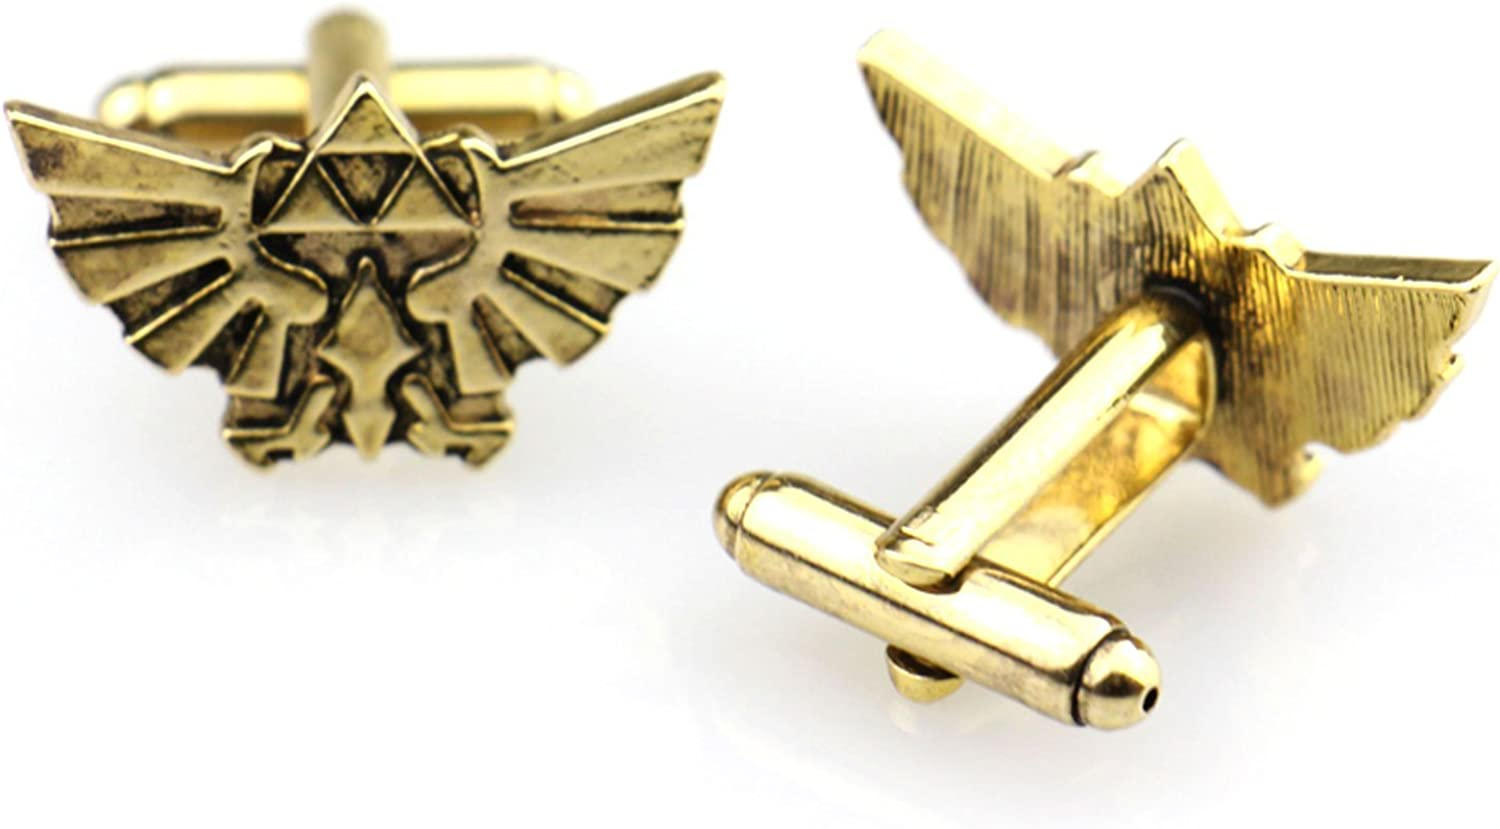 French Cockerel Gold-tone Square Cufflinks with Select Gifts Pouch